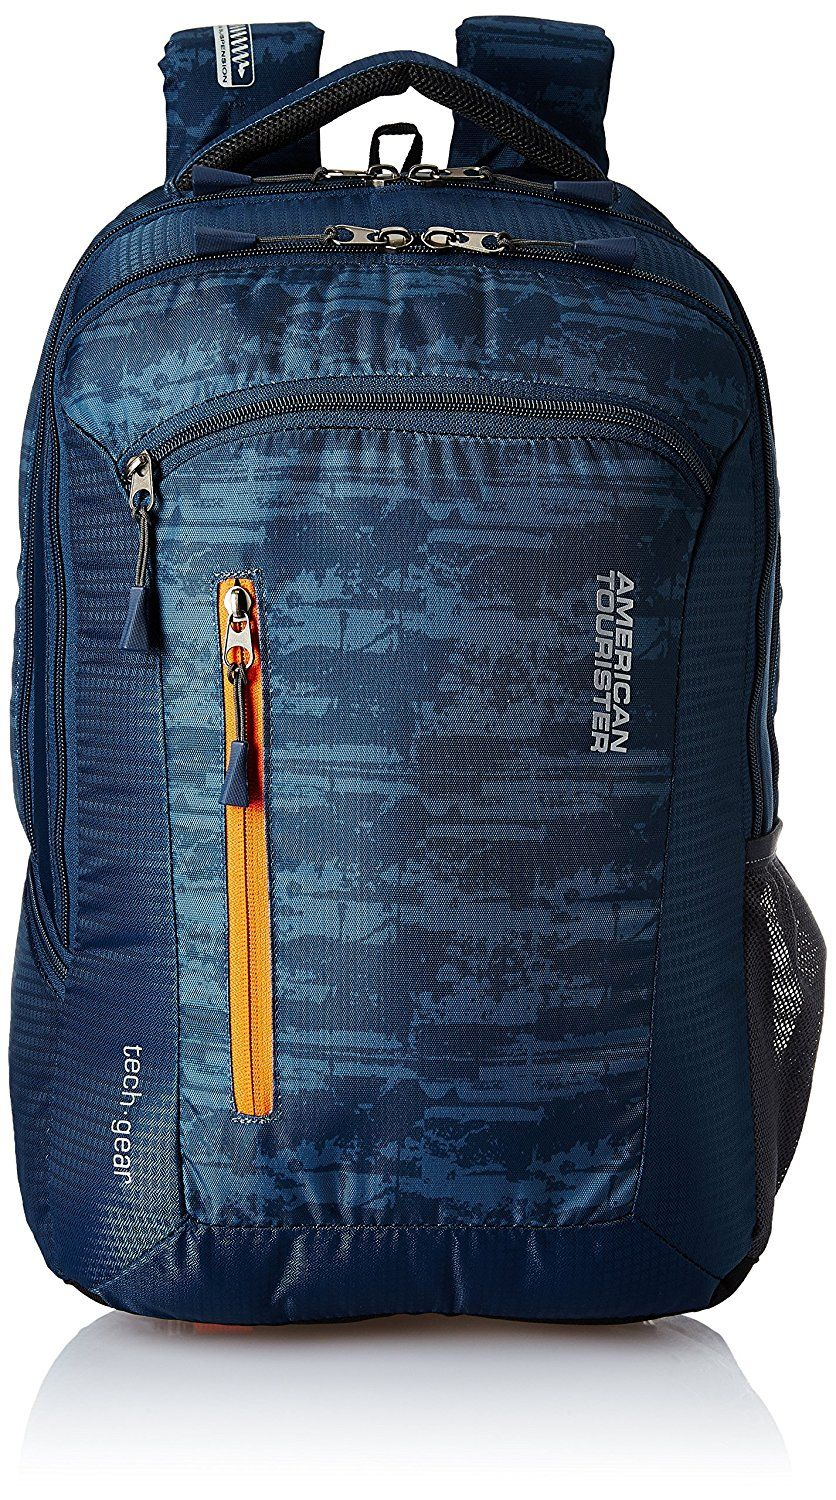 1a350031e86 American Tourister Polyester 28 Ltrs Blue Laptop Backpack #bag #bags  #laptop #menstyle #mensfashion_guide